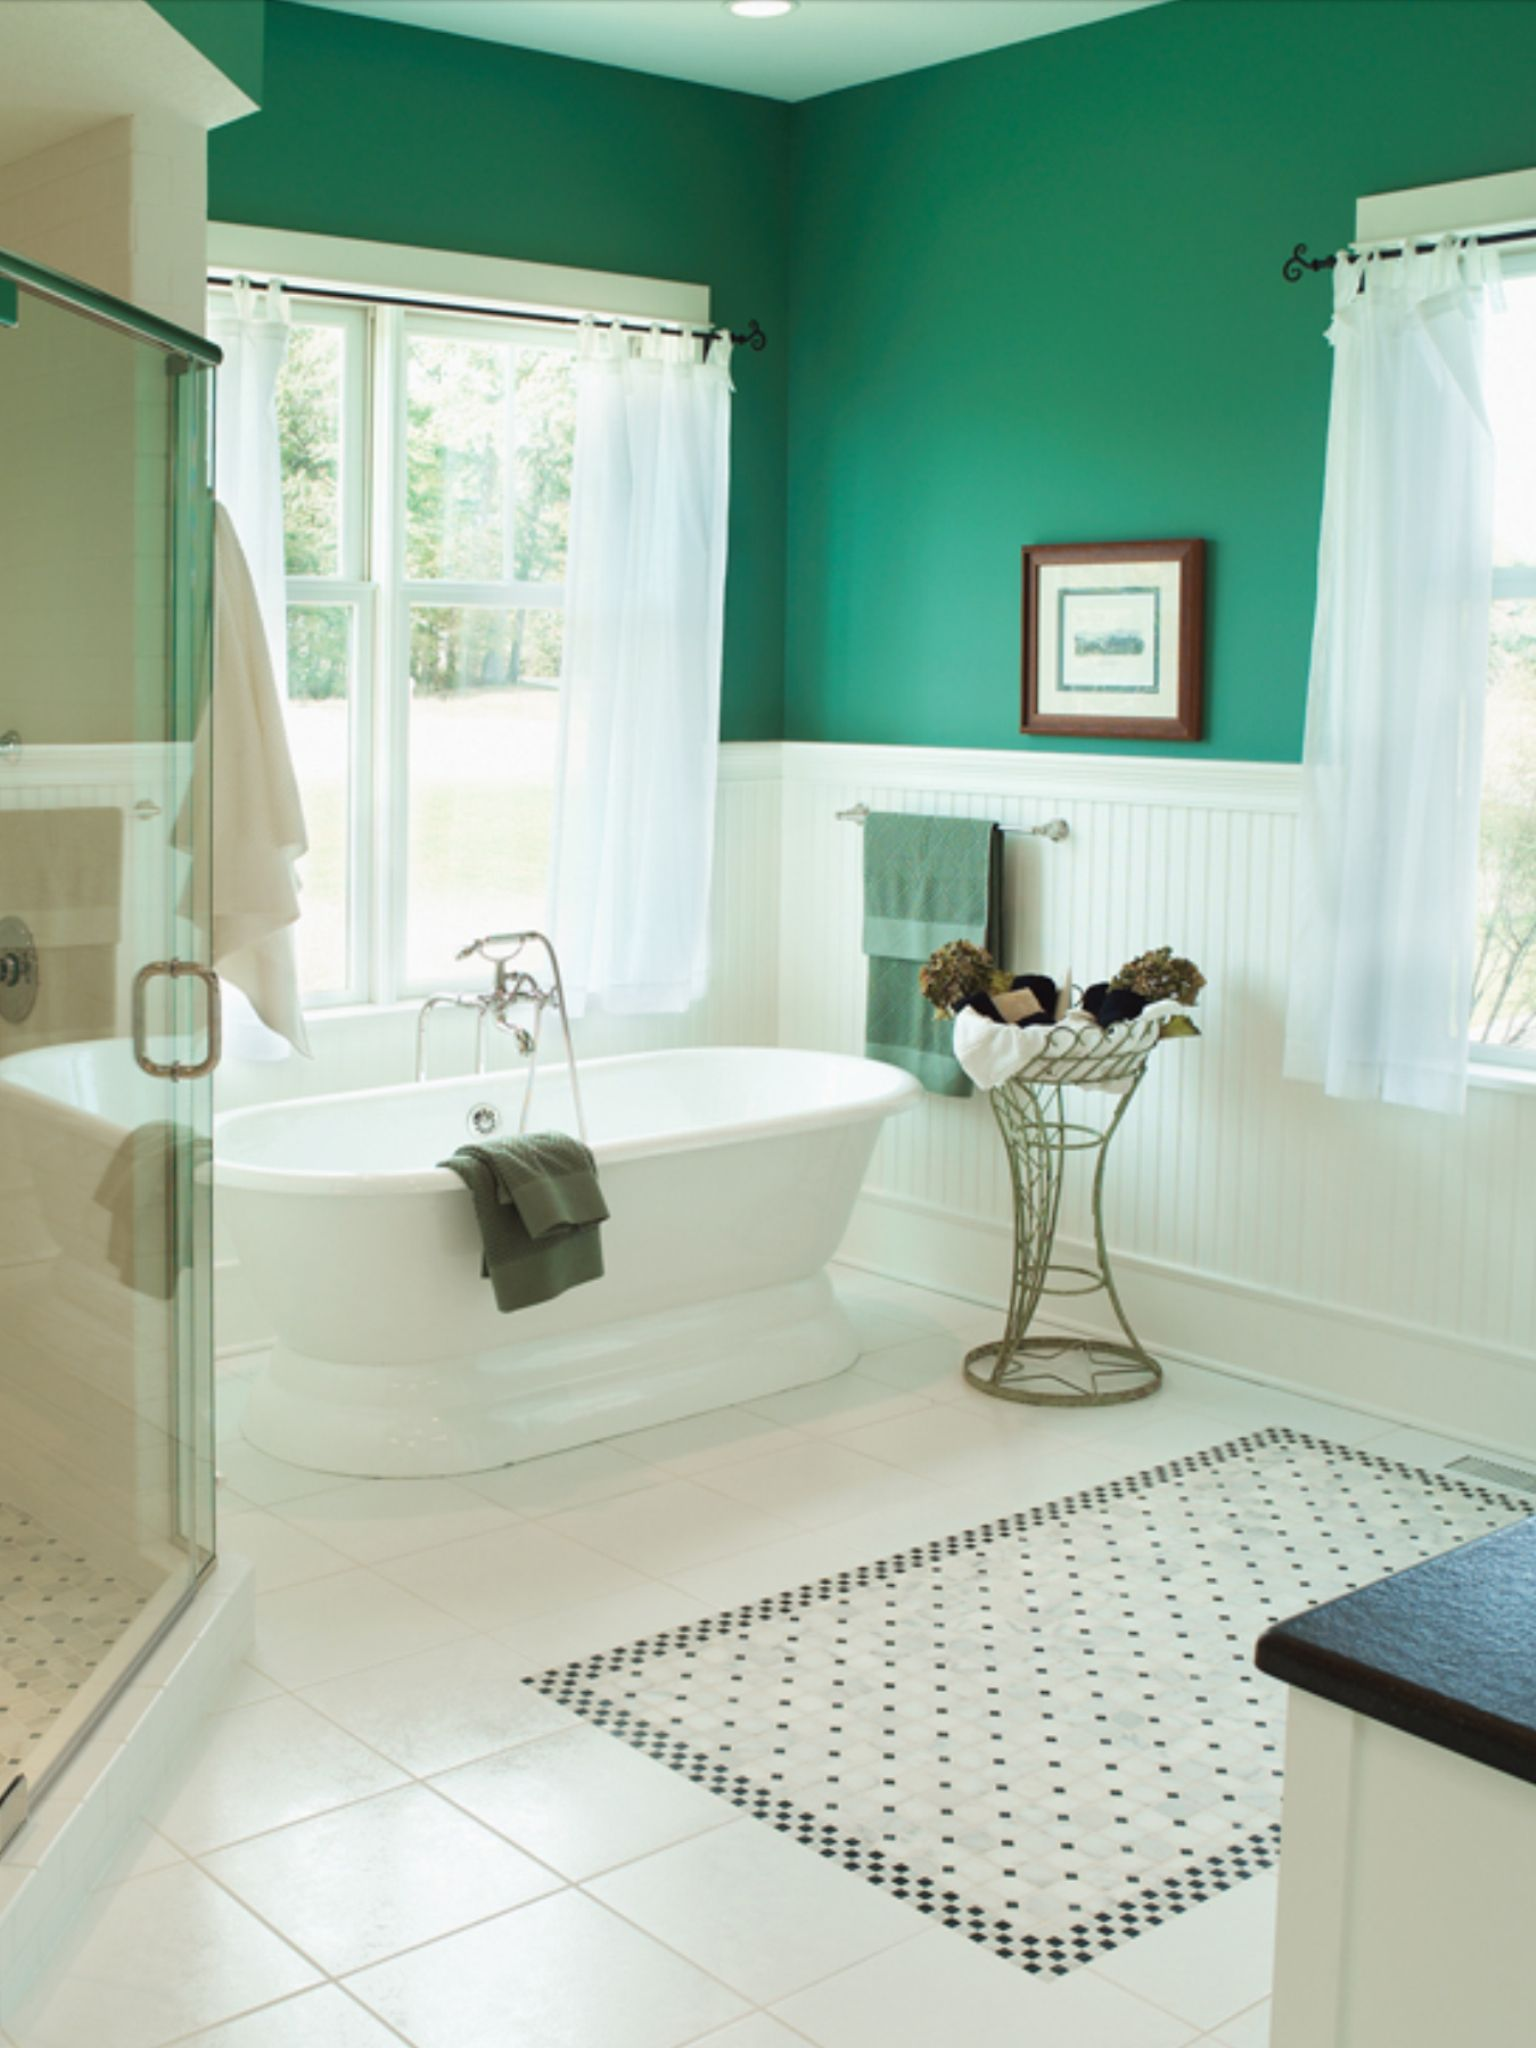 decorative floor tile - Master bathroom colors like the colors